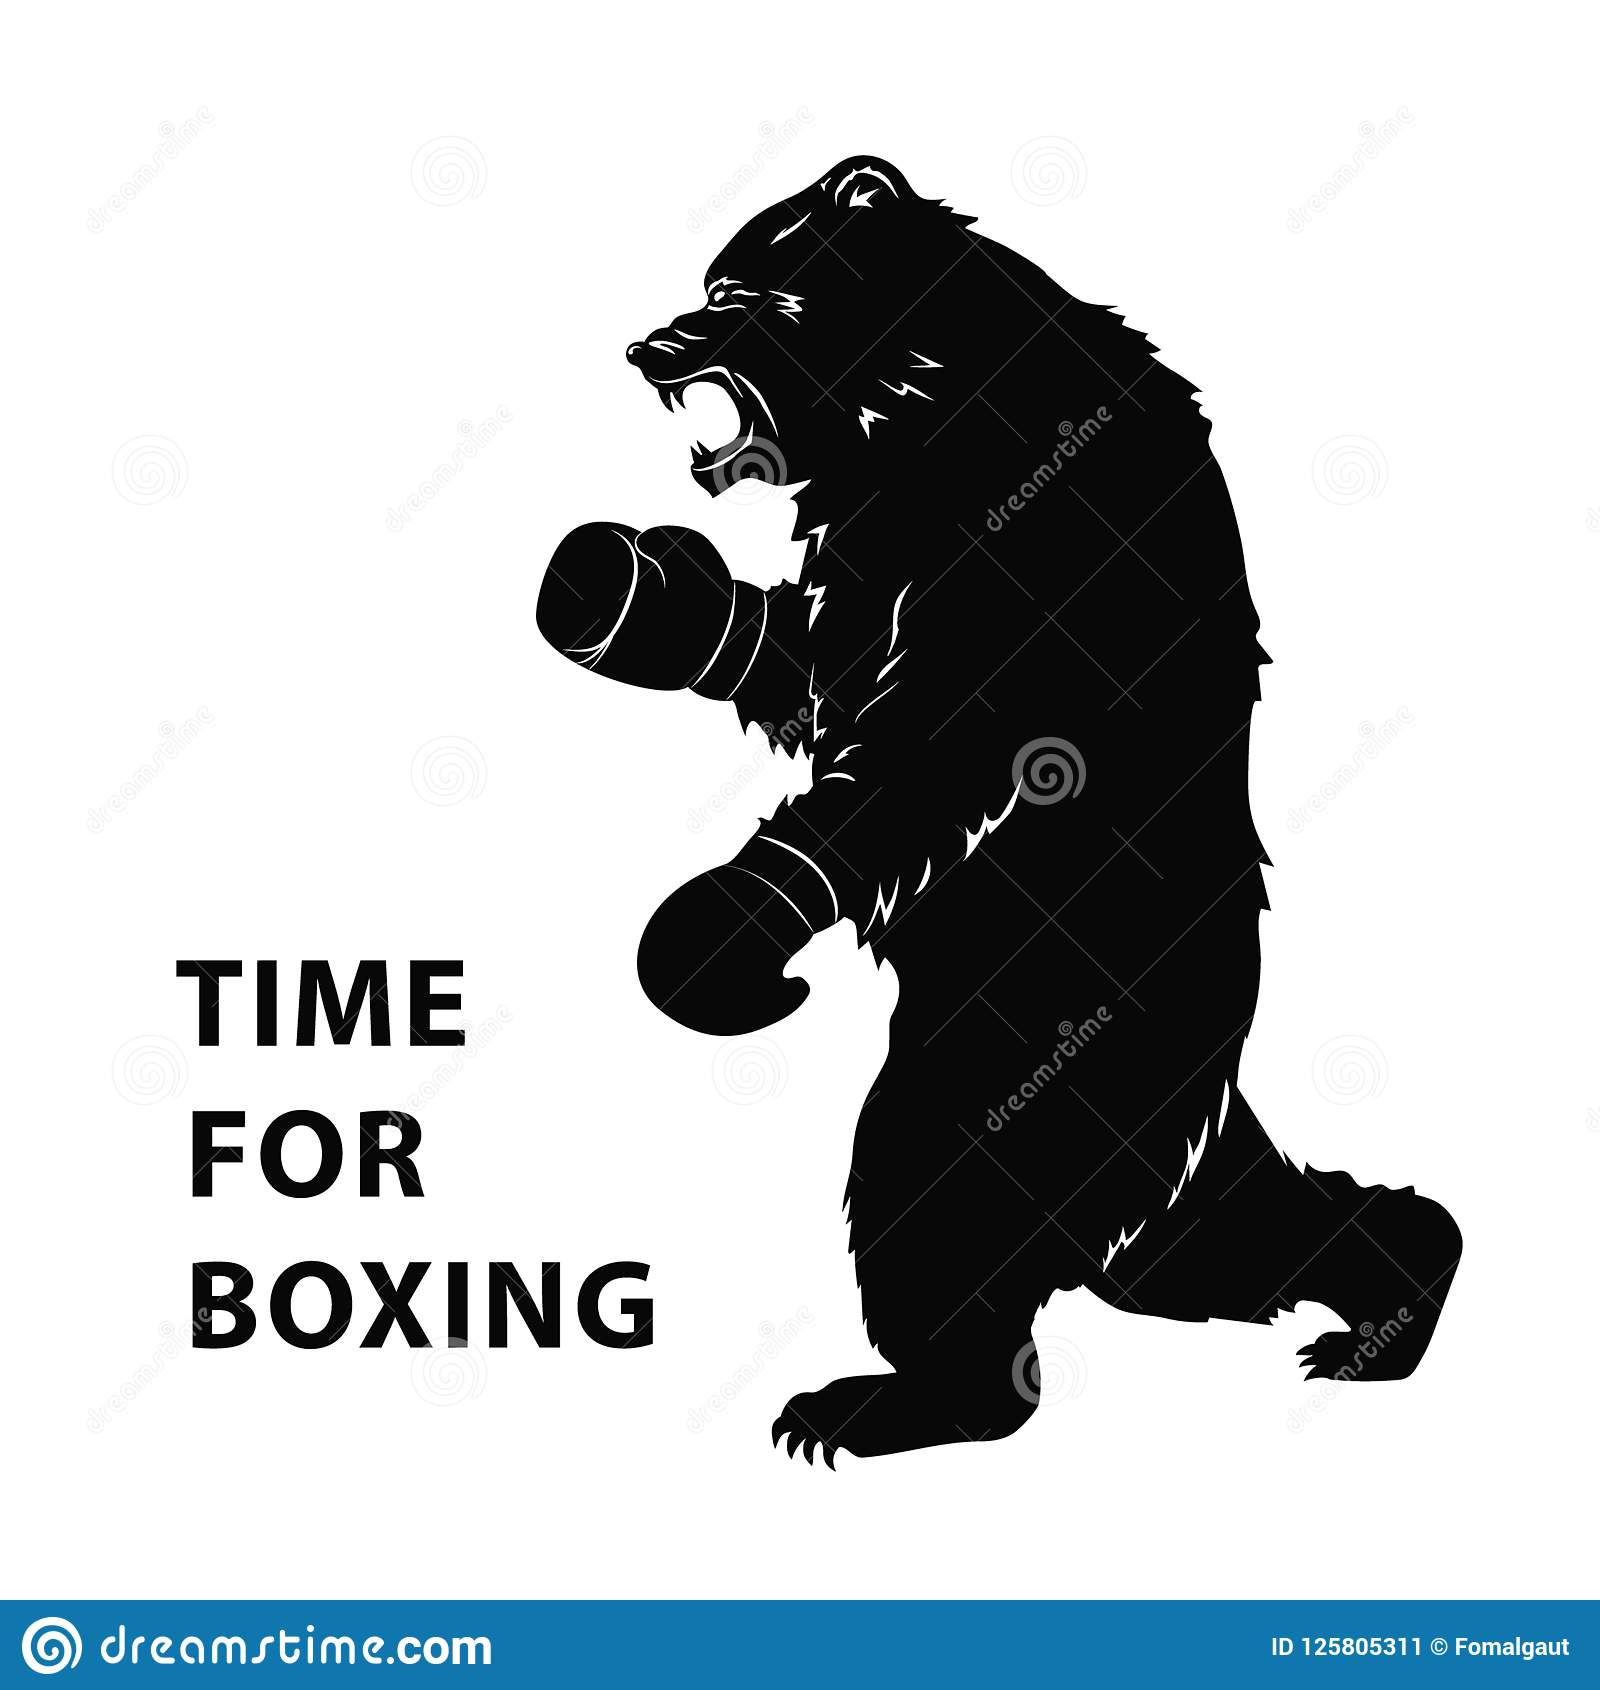 black bear in boxing gloves silhouette of a wild animal for sport